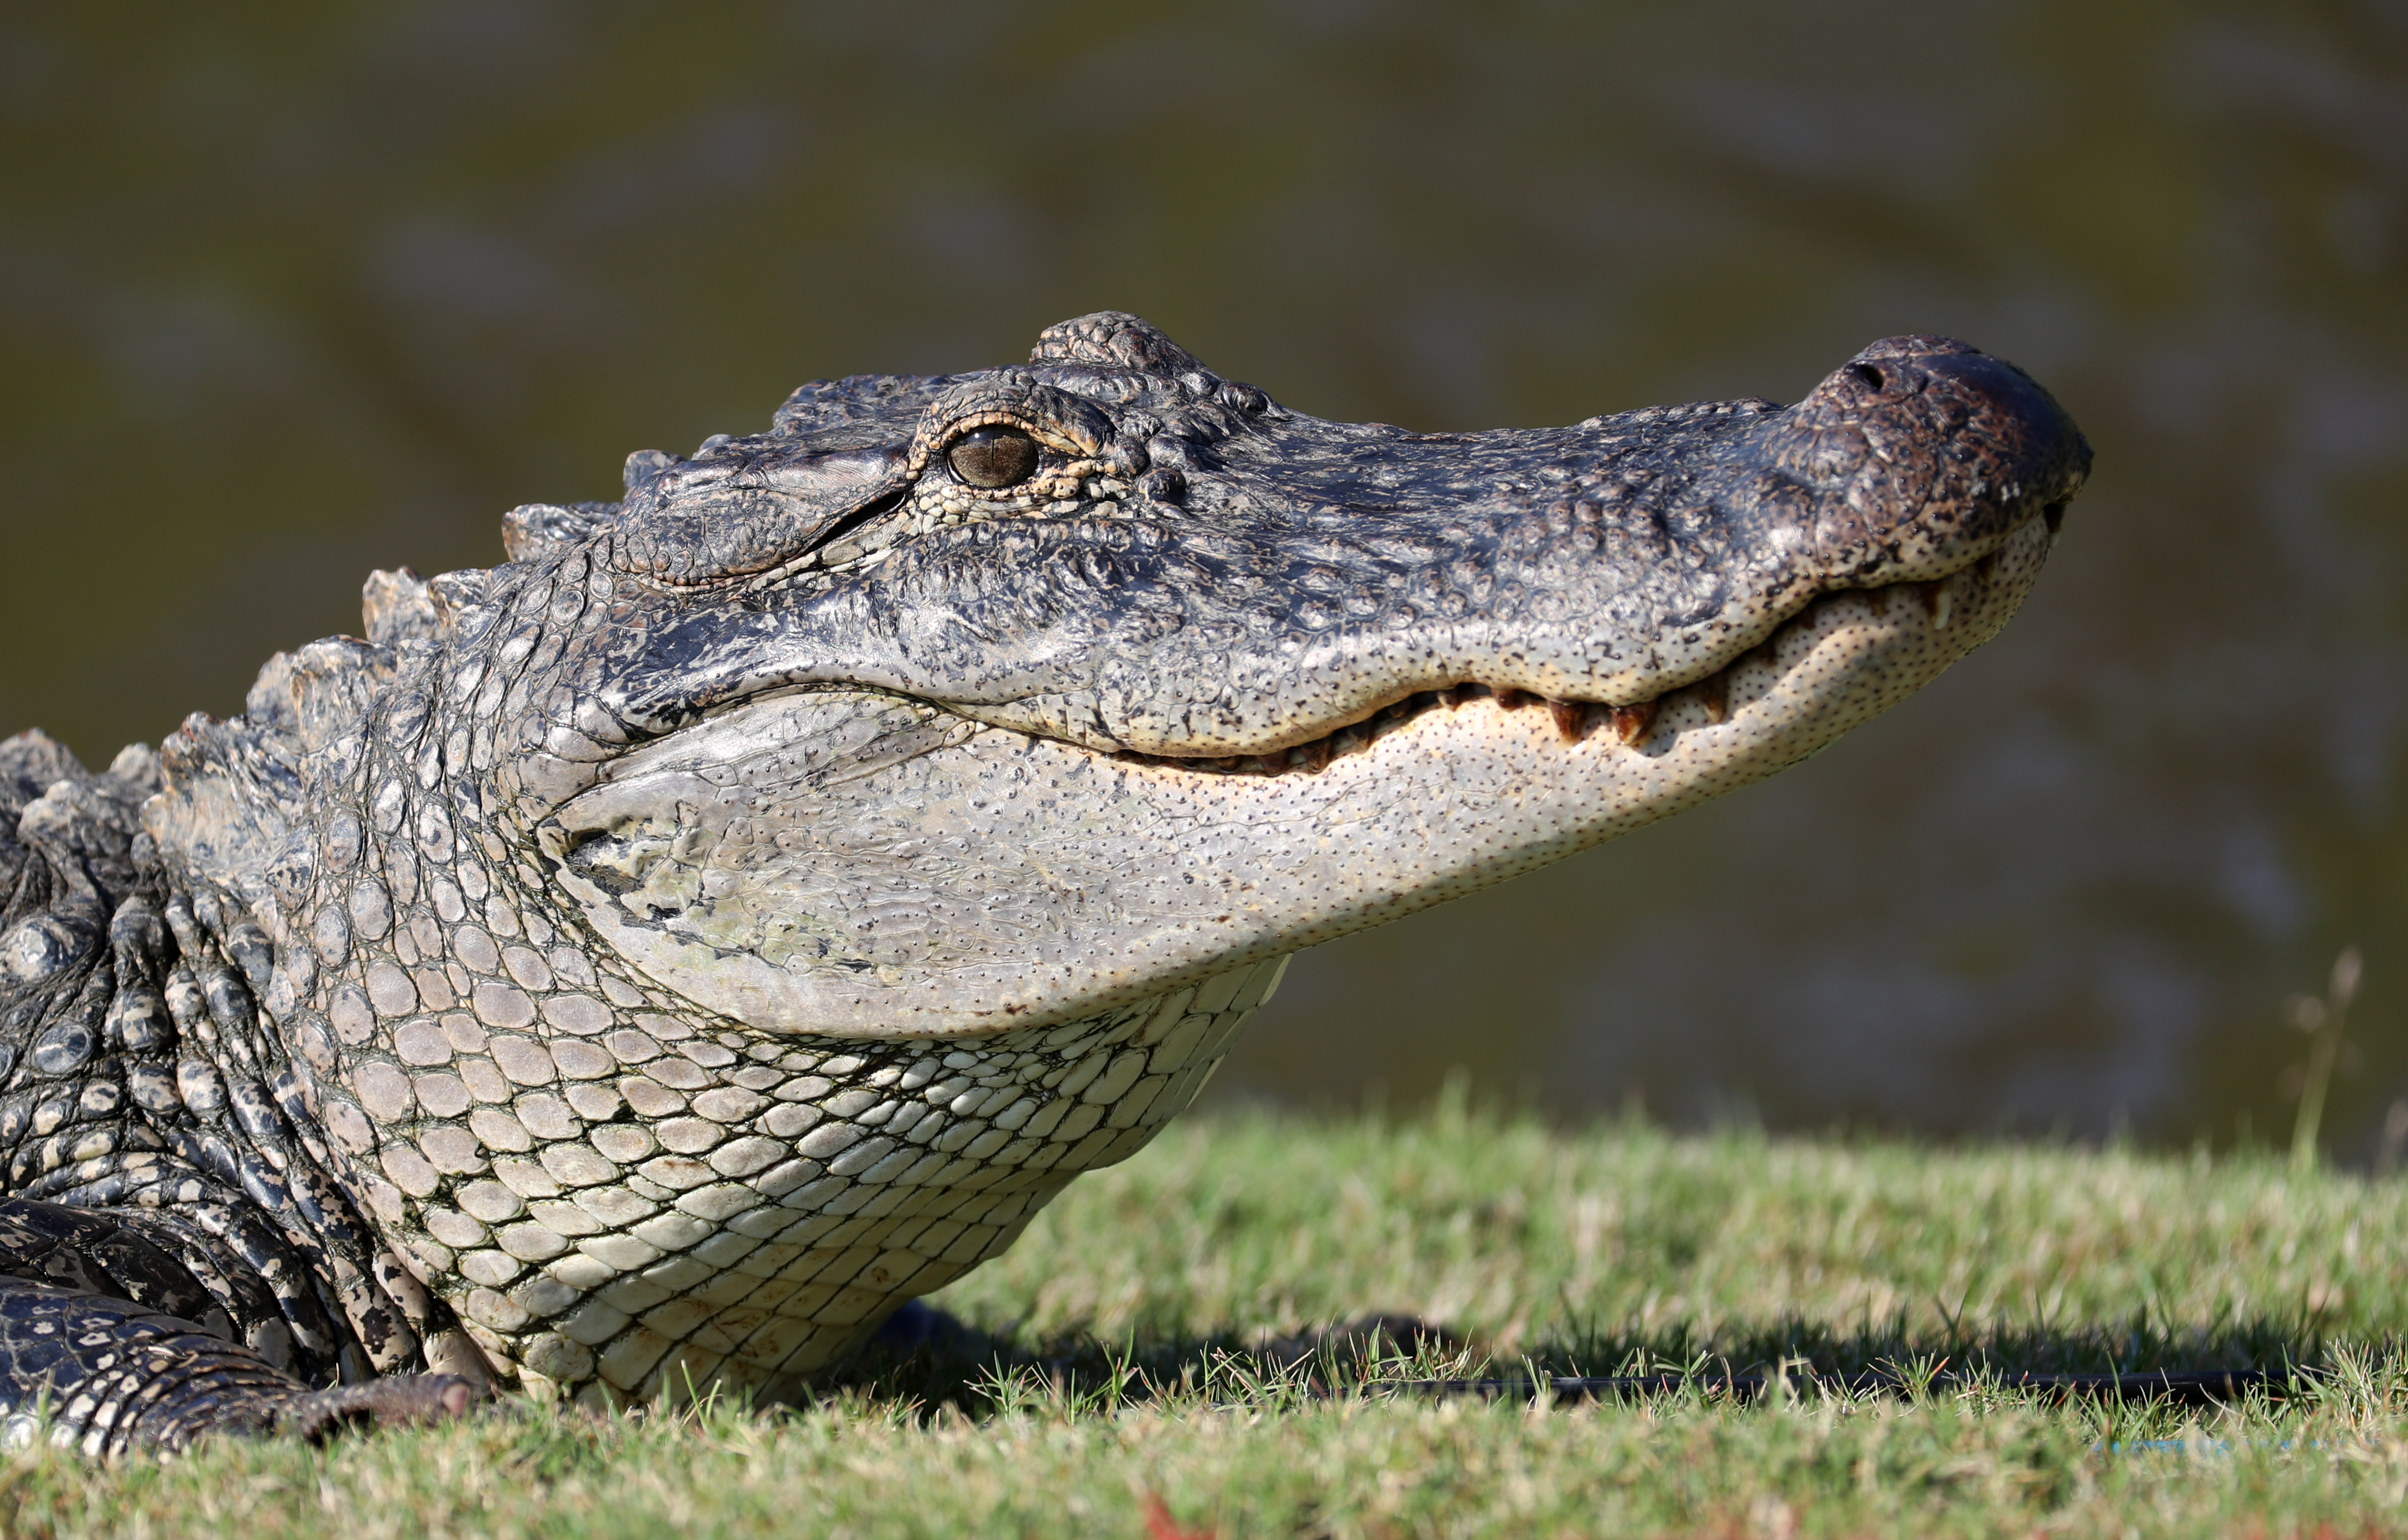 An alligator is seen near the seventh green during the first round of the Zurich Classic at TPC Louisiana on April 25, 2019 in Avondale, Louisiana. (Photo by Chris Graythen/Getty Images)